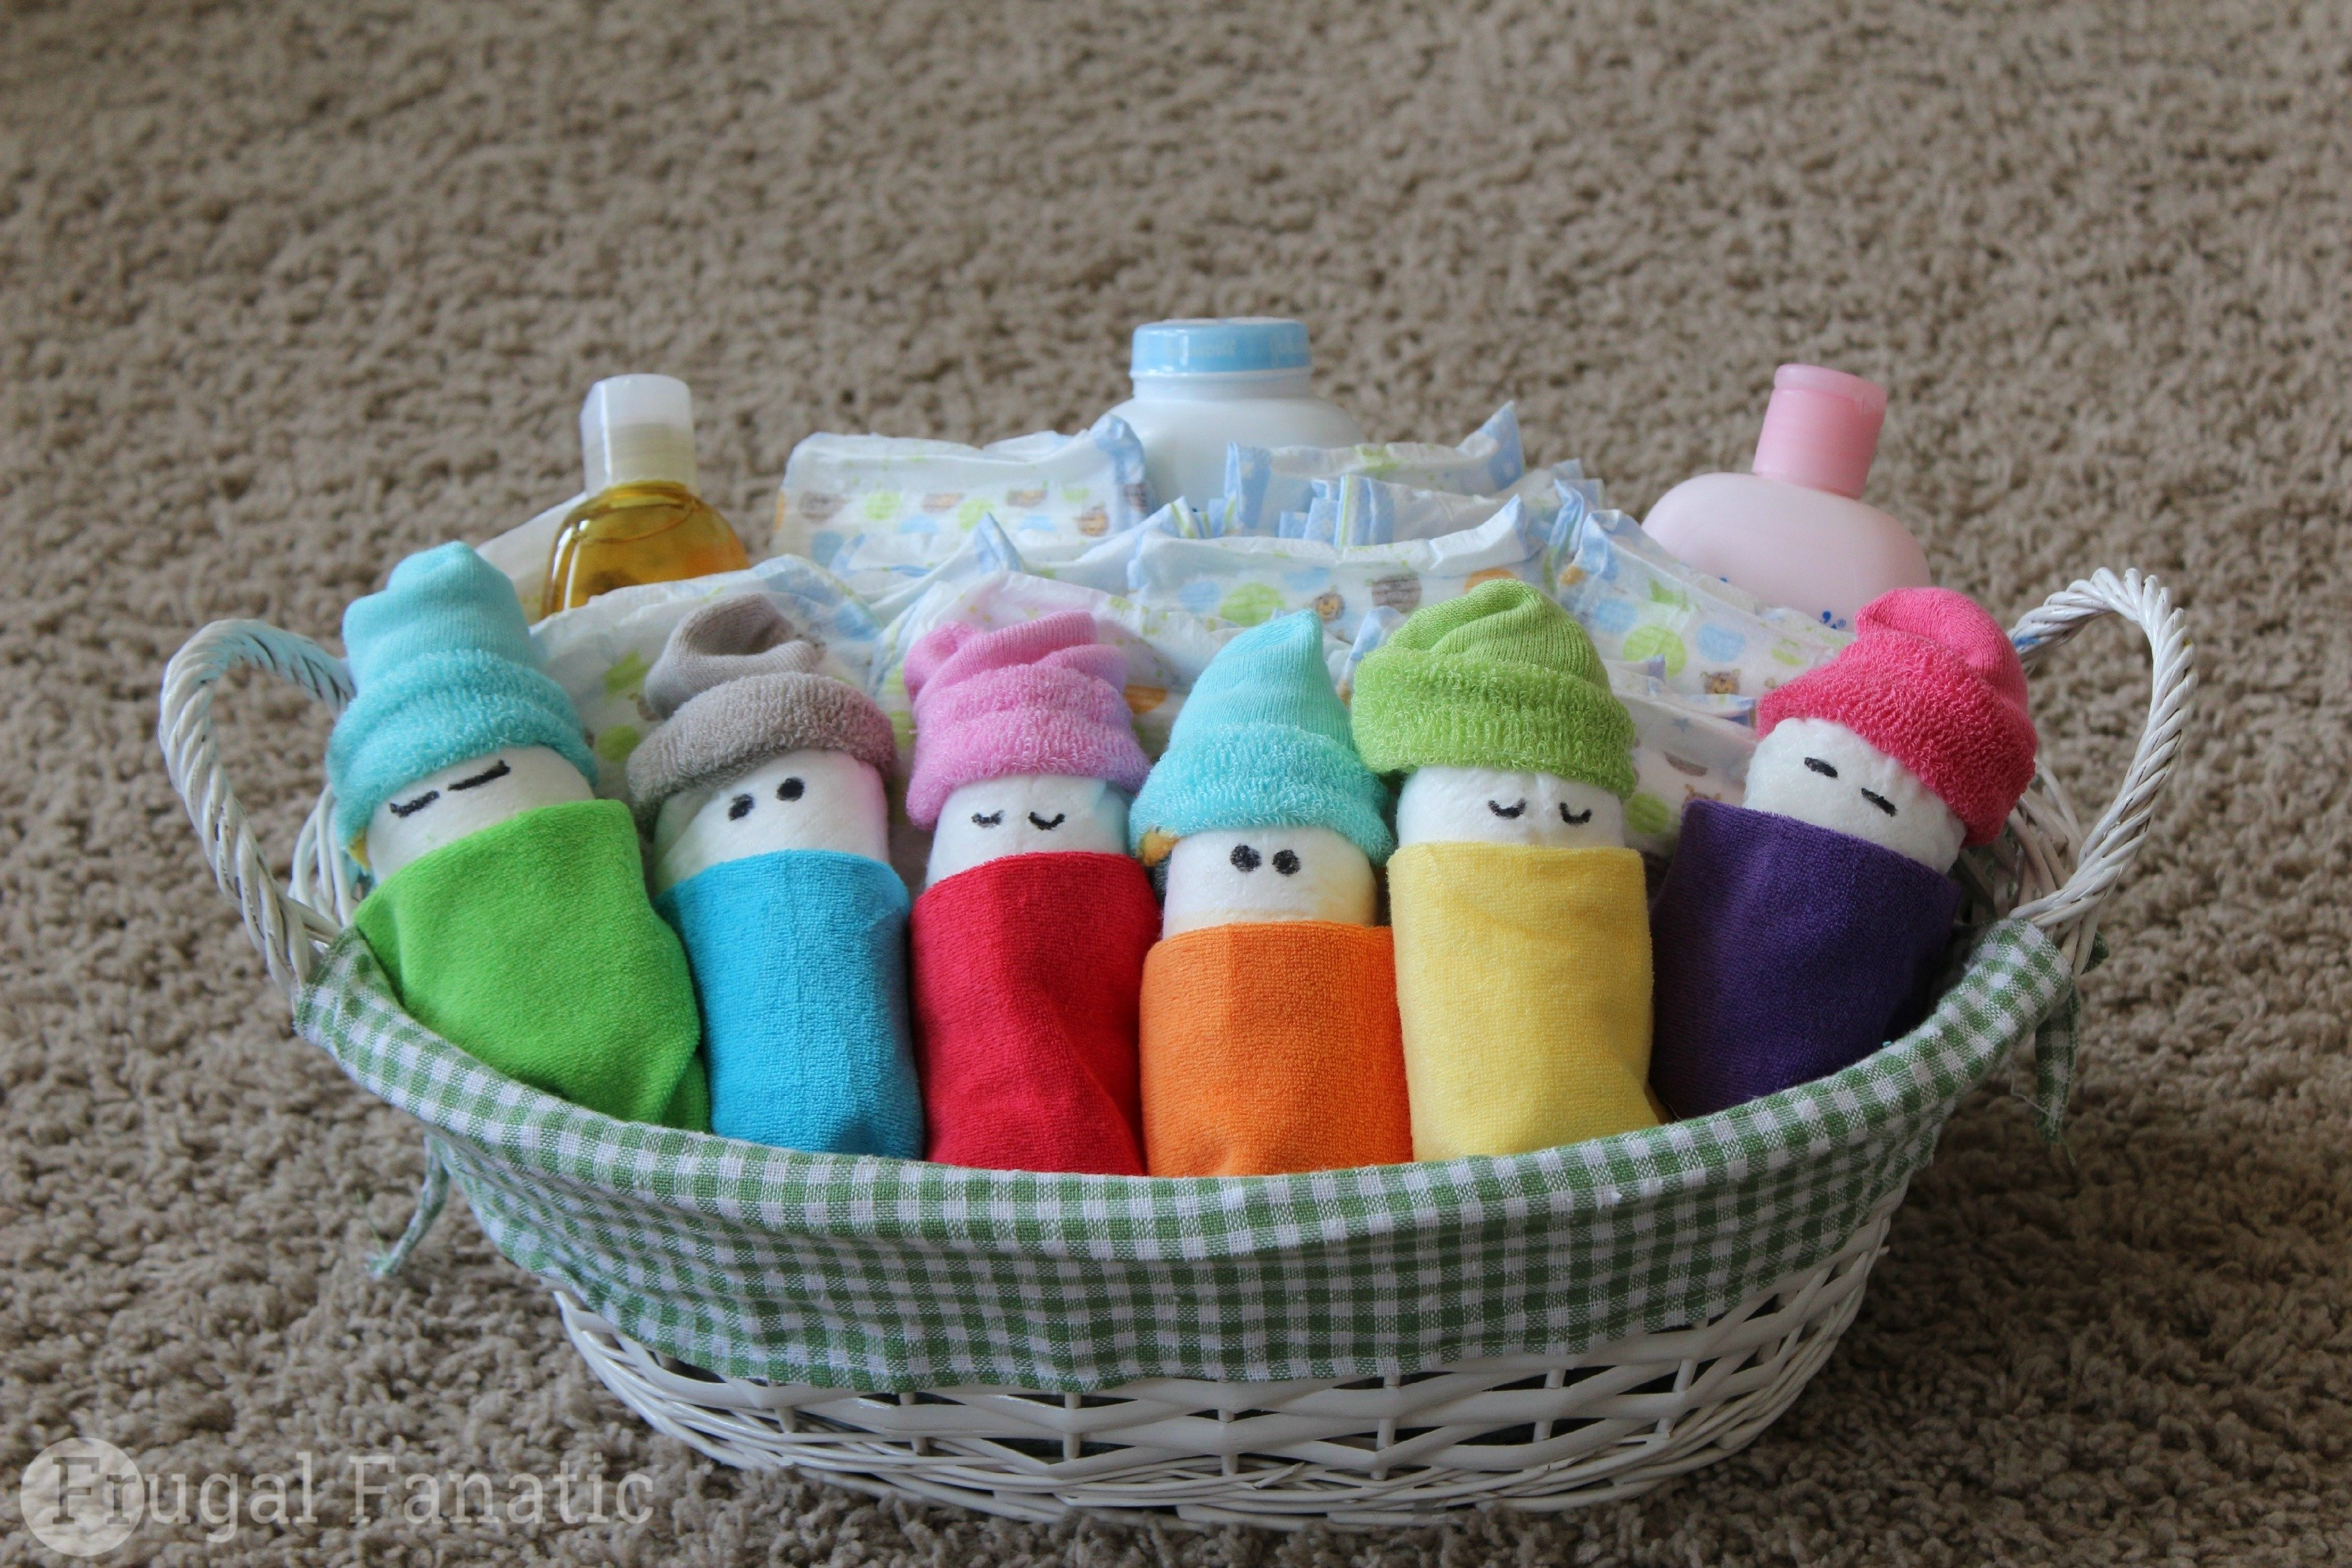 10 Fabulous Ideas For Baby Shower Gifts how to make diaper babies easy baby shower gift idea frugal fanatic 7 2020